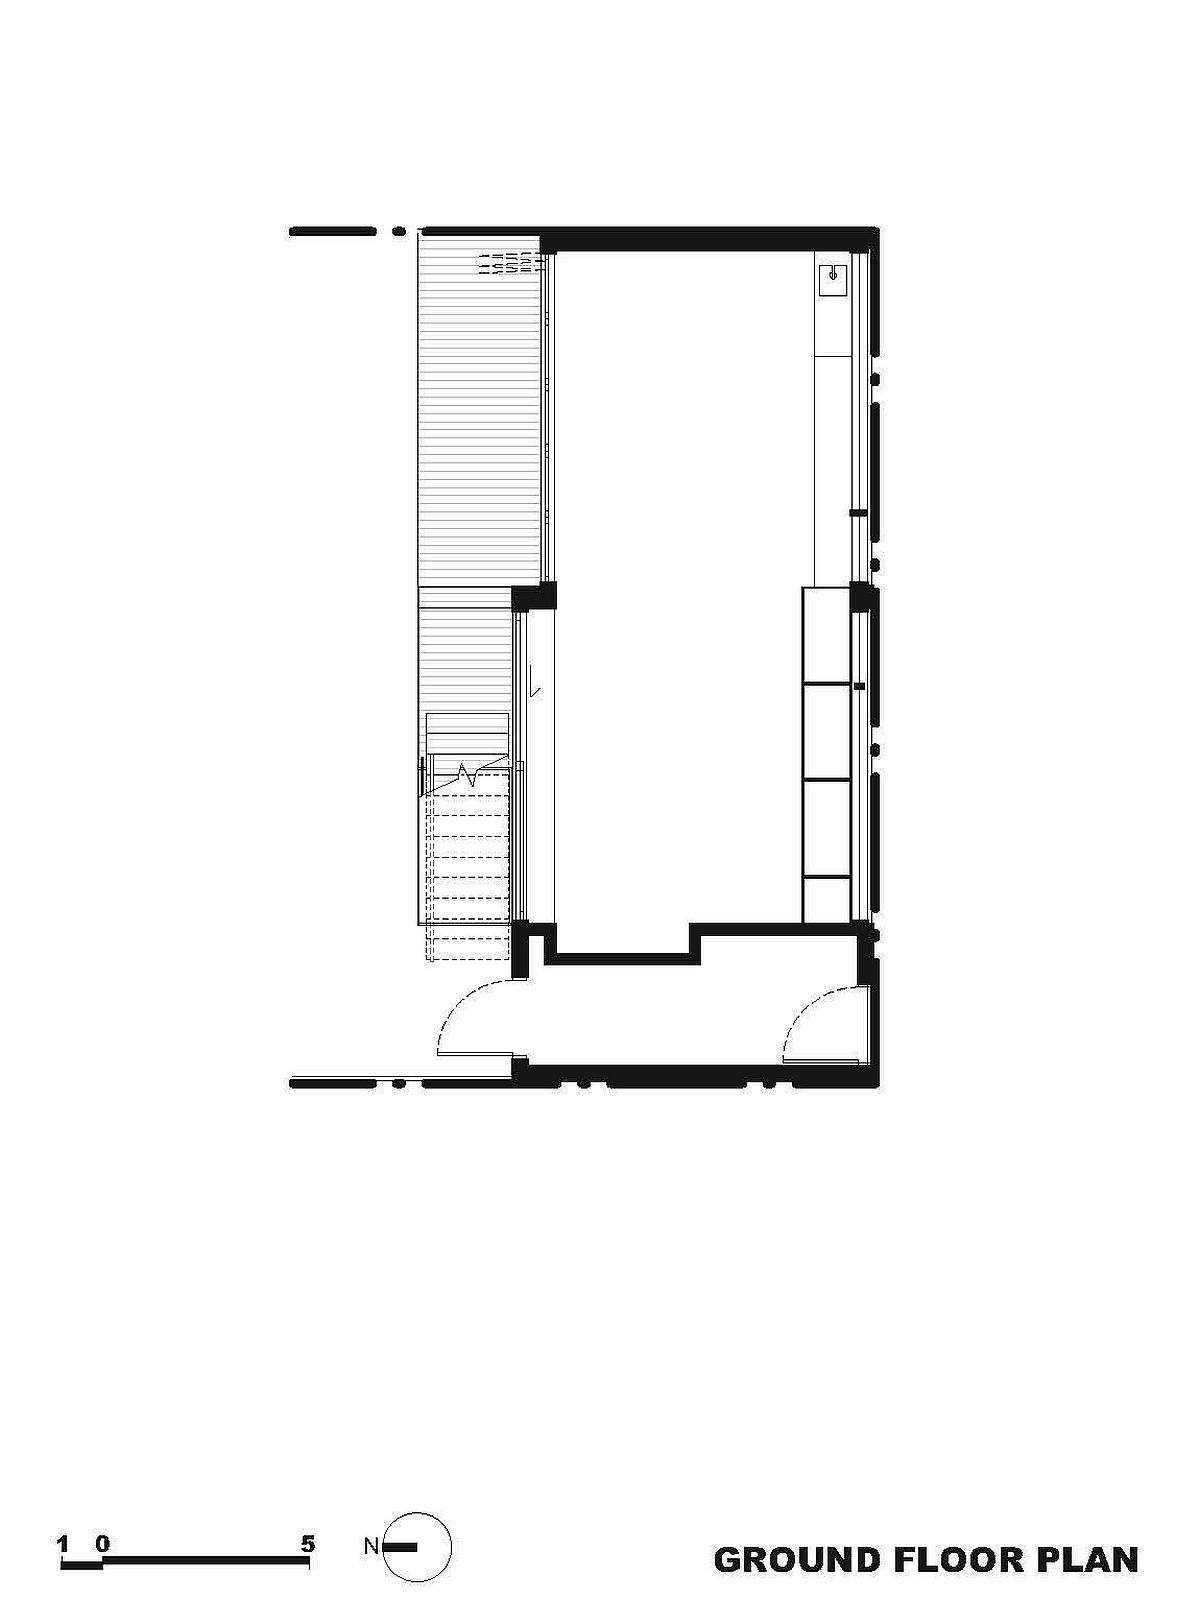 Ground floor plan of new addition to suburban home in Melbourne